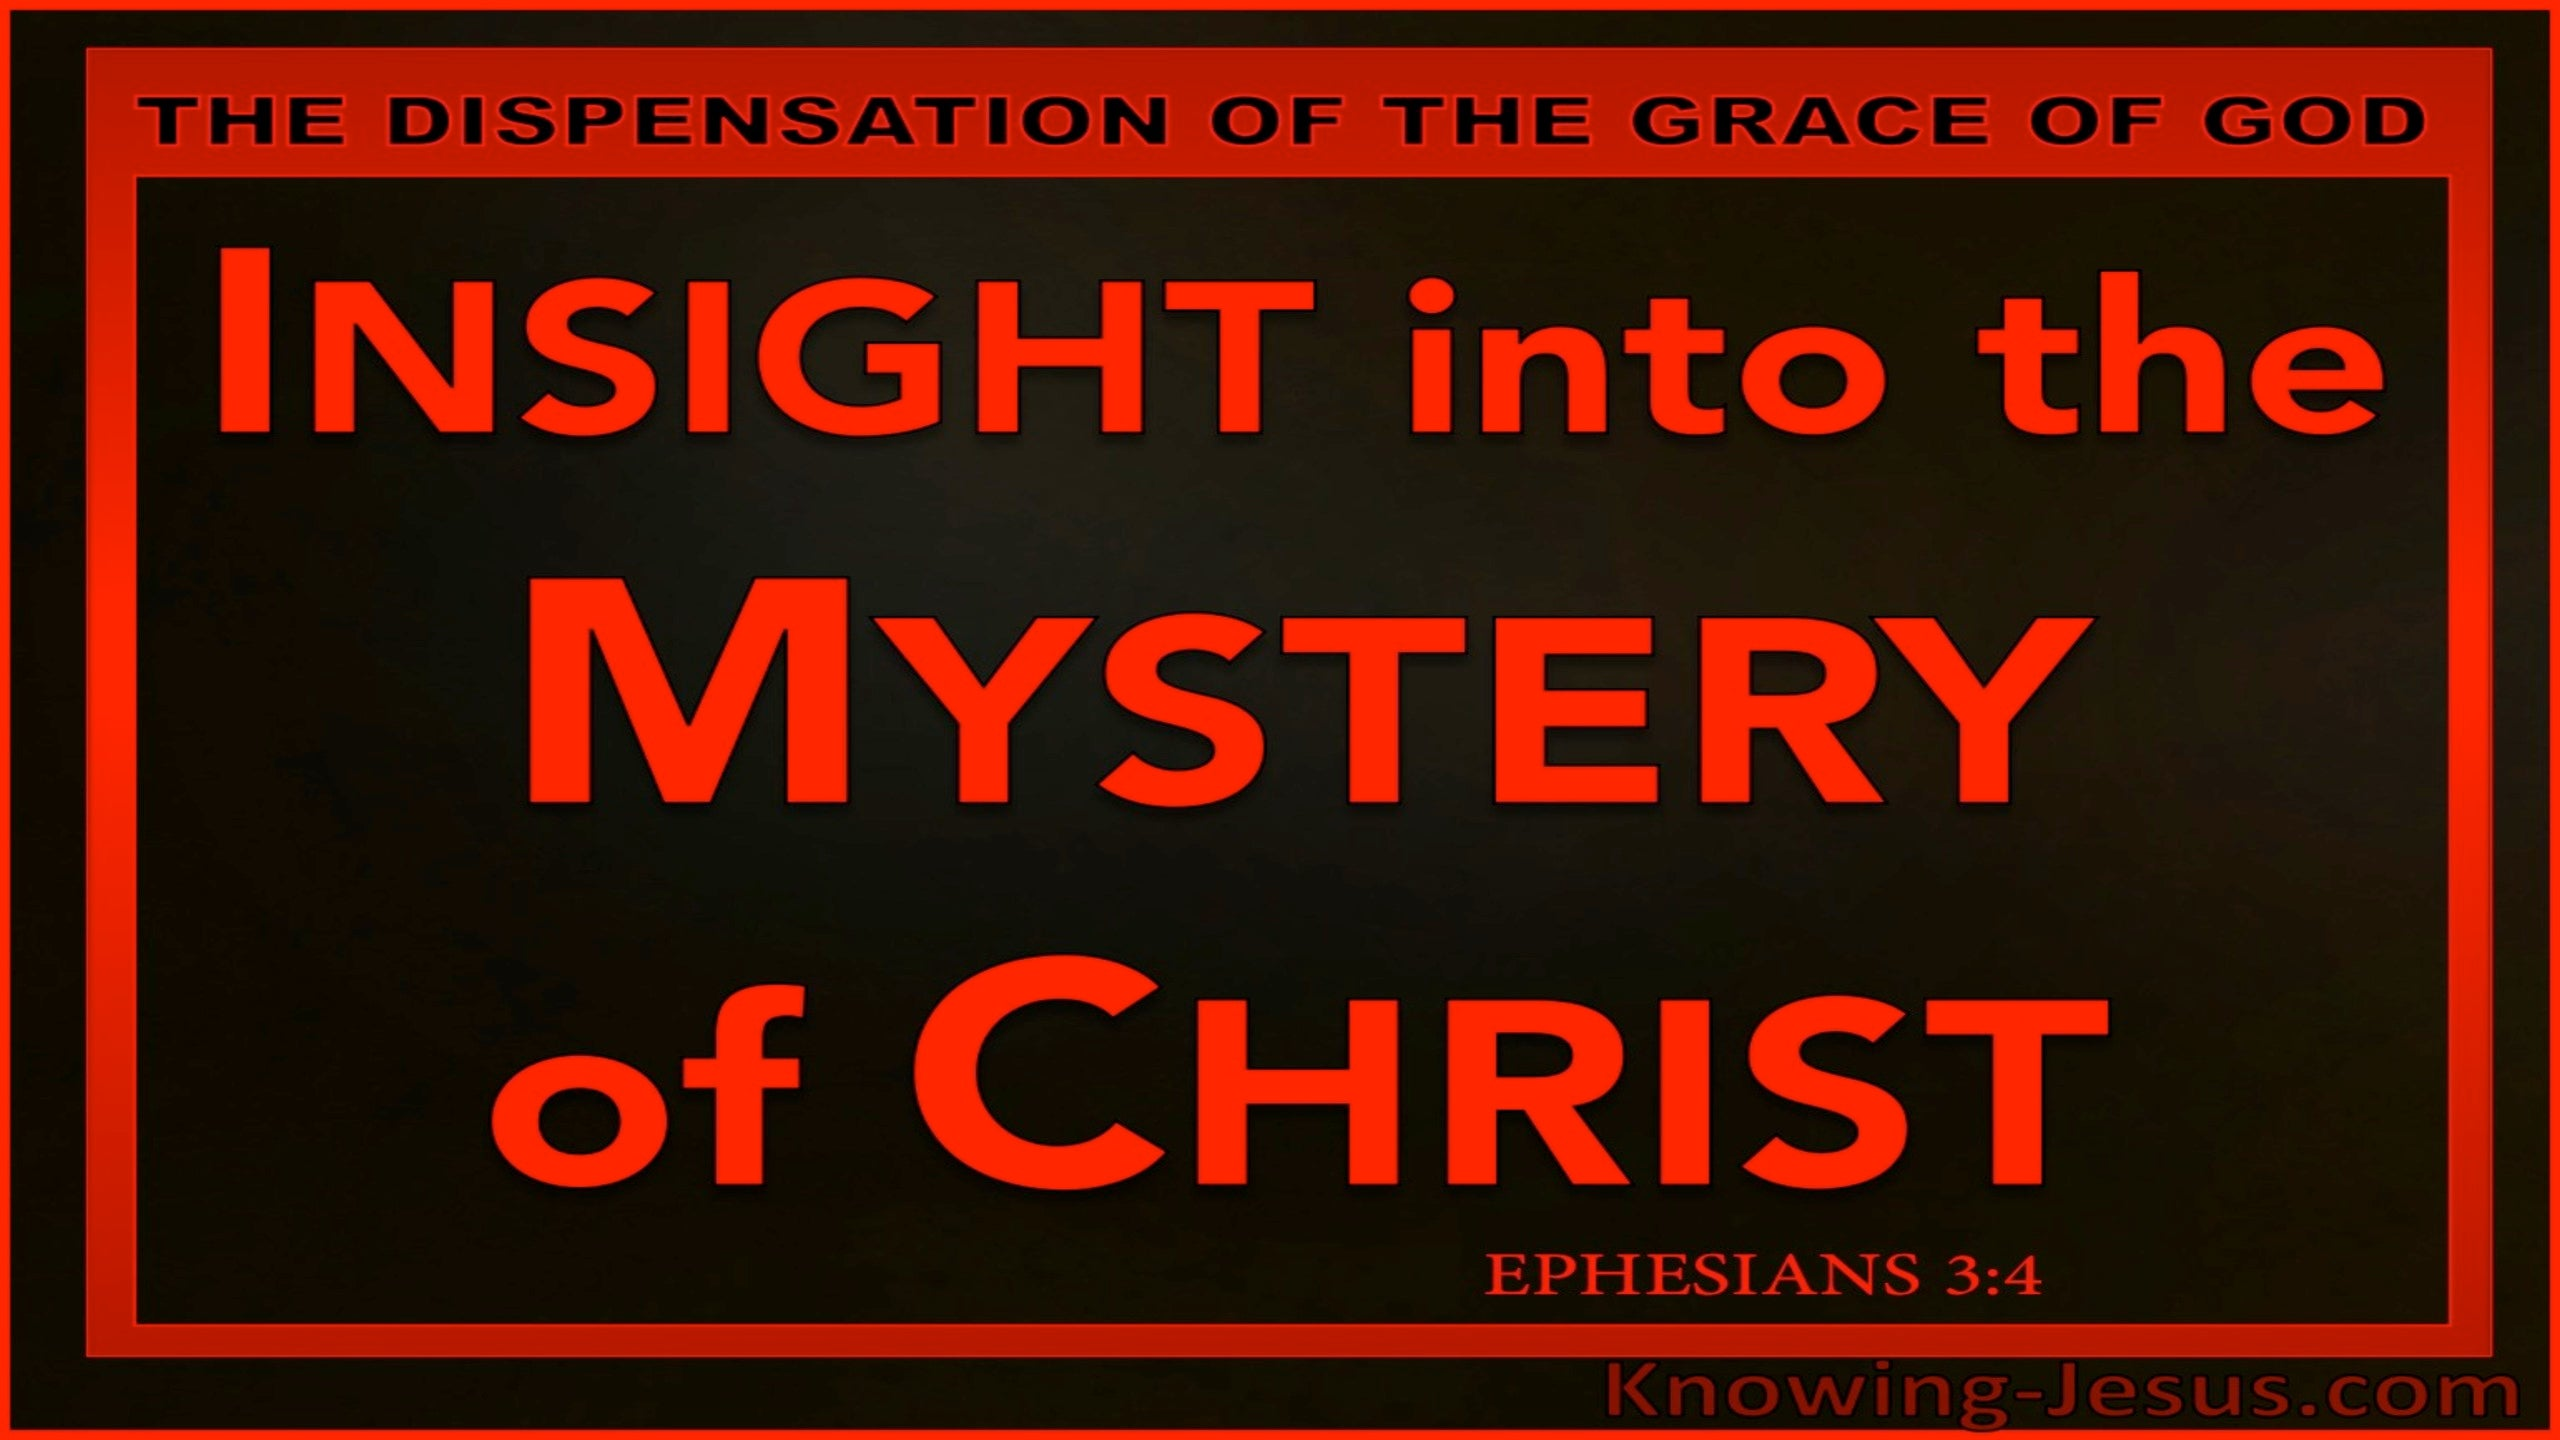 Ephesians 3:4 Insight Into The Mystery Of Christ (red)